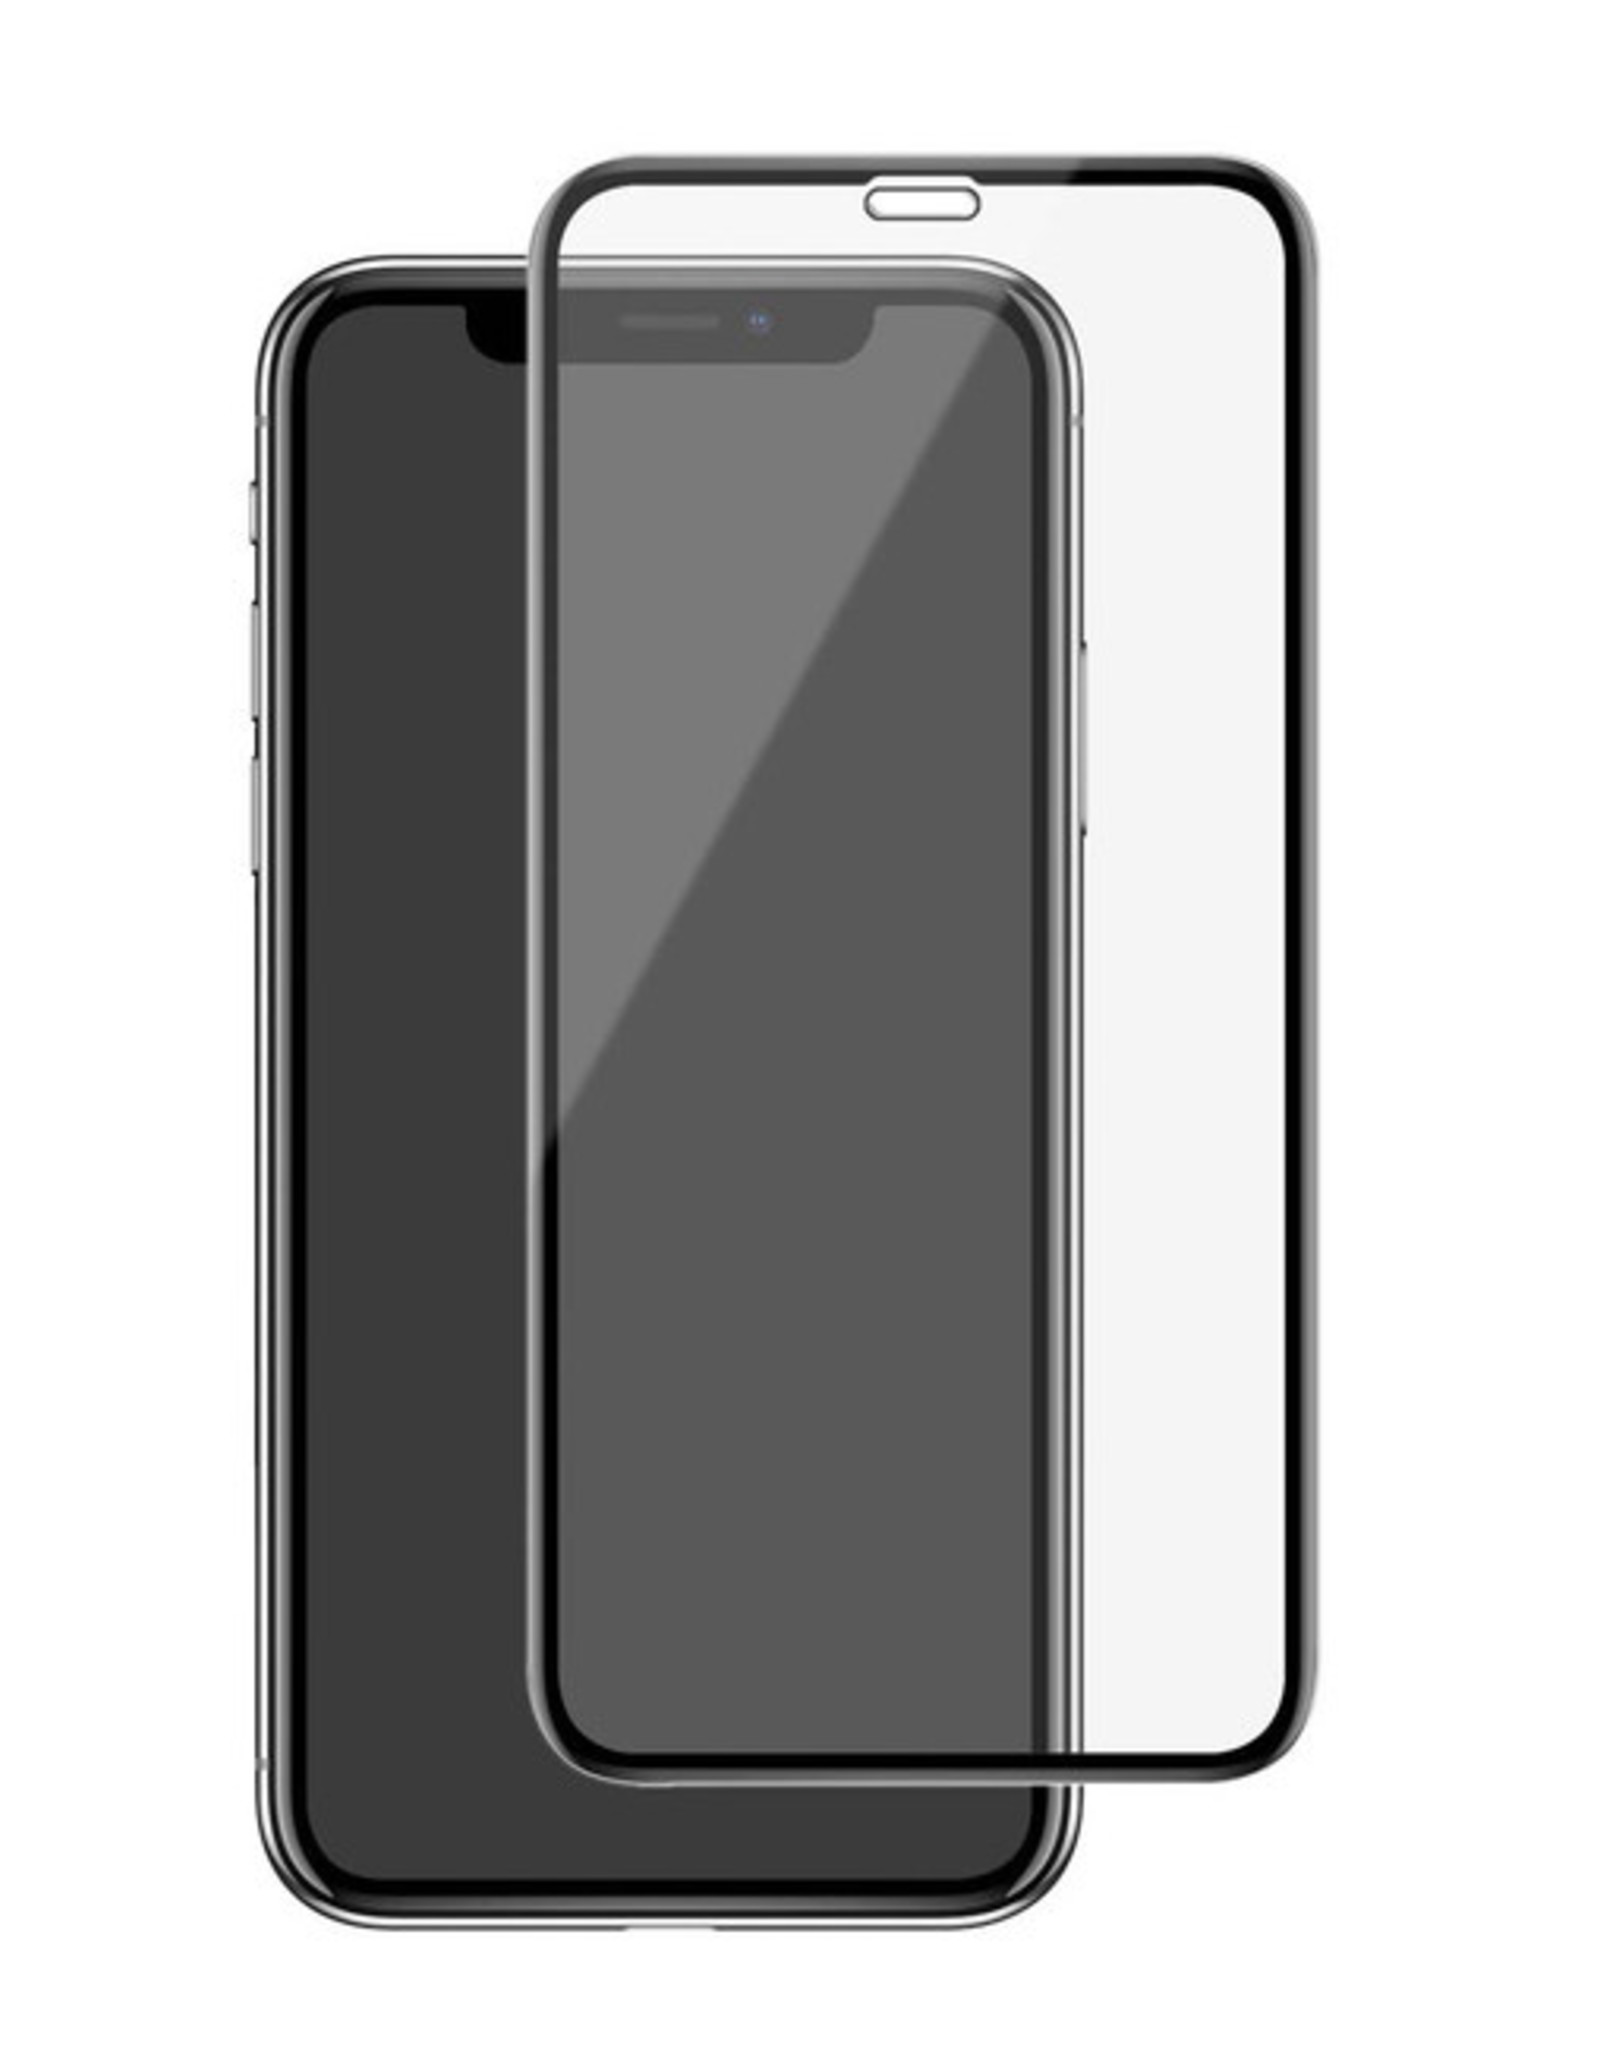 Blu Element Blu Element - 3D Curved Glass Screen Protector for iPhone 11 118-2154